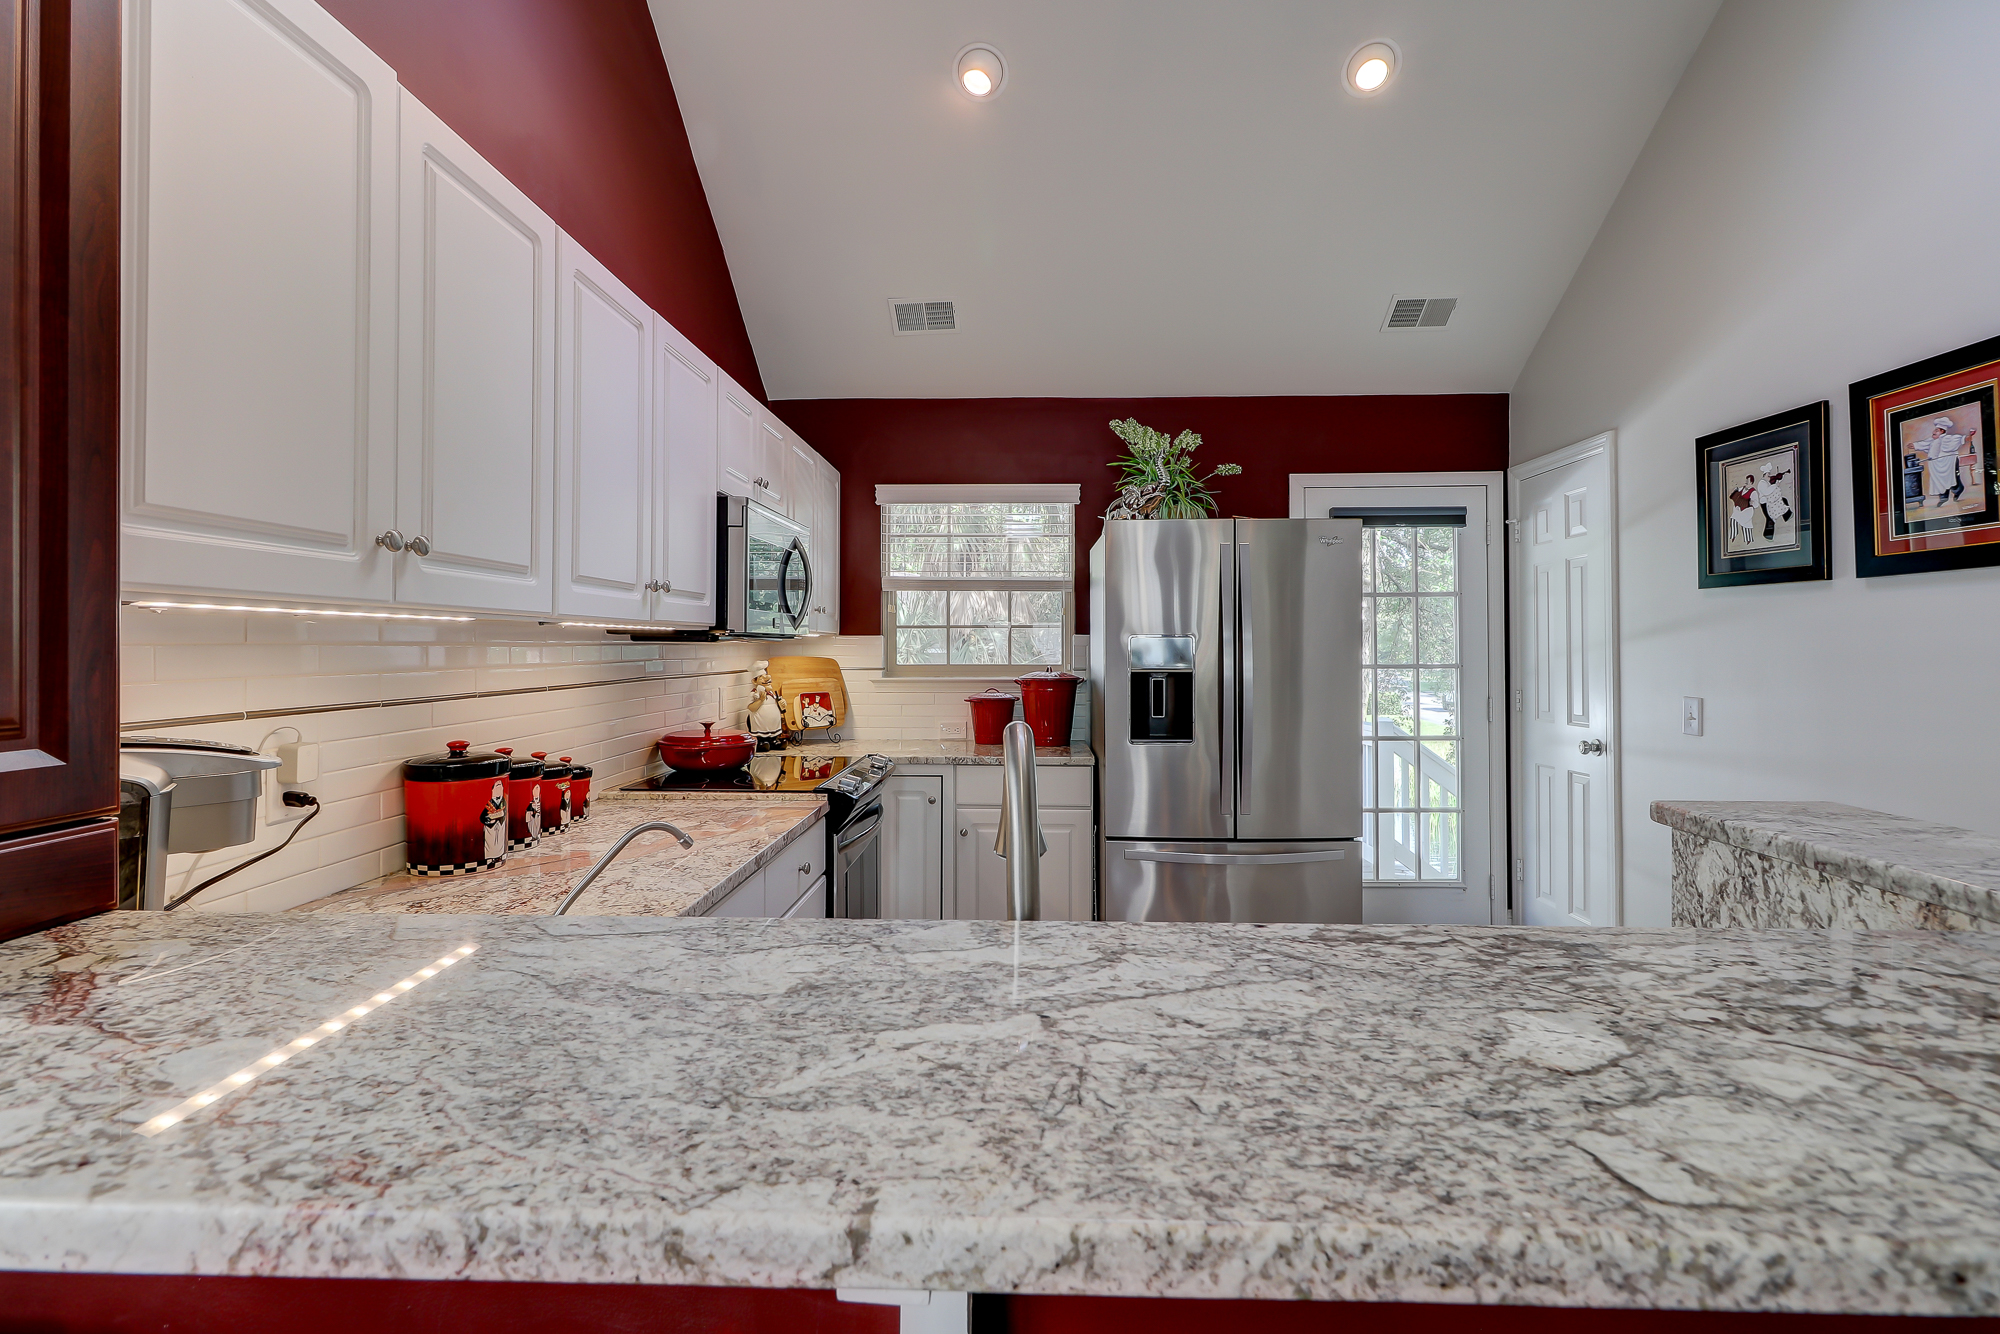 Granite Counter Tops, Stainless Steel Appliances and High Cathedral Ceiling